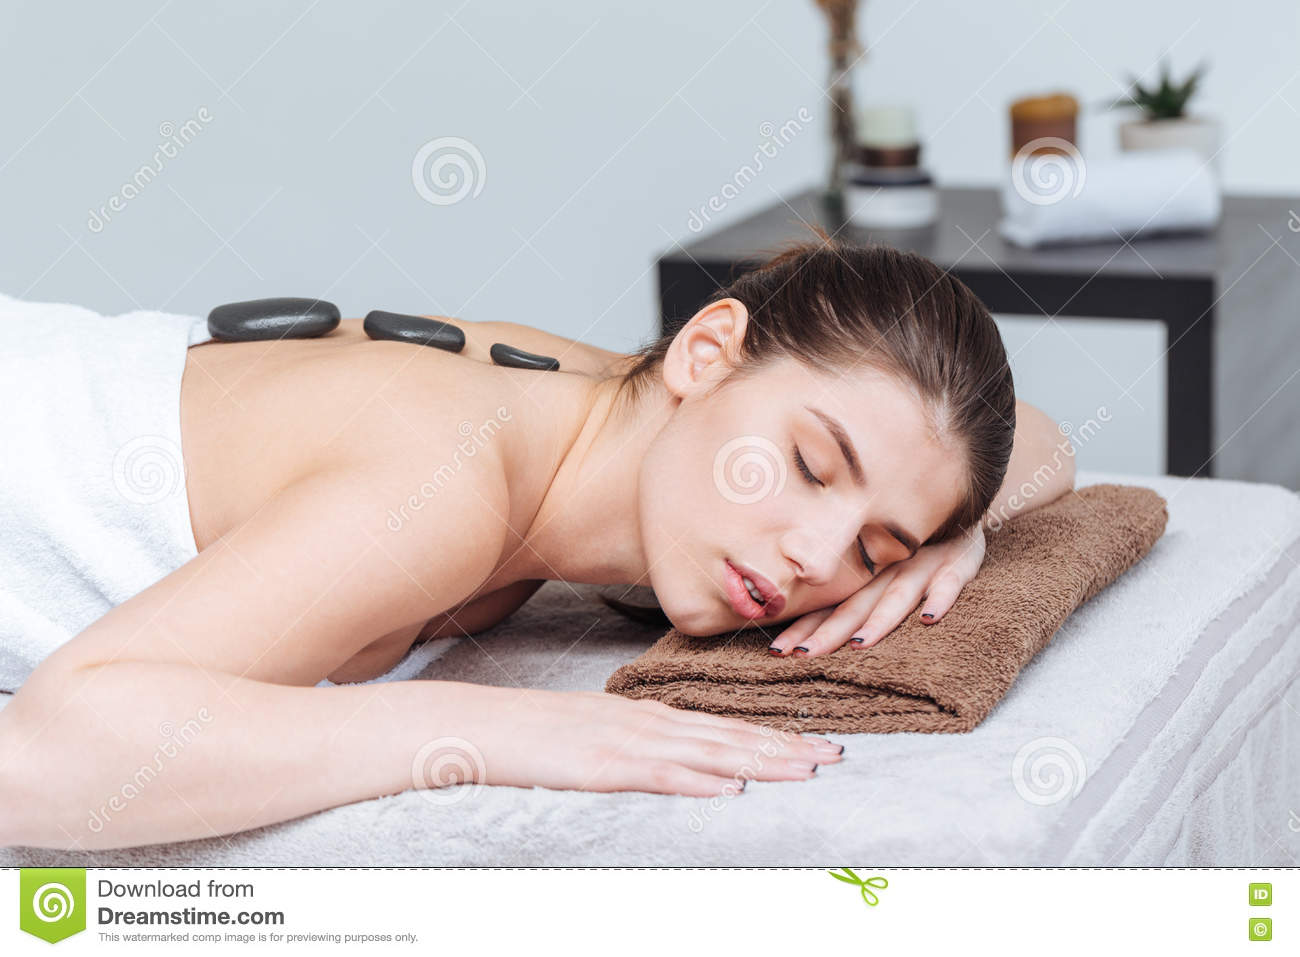 Sensual Young Woman Relaxing And Receiving Hot Stone Massage In Spa Salon